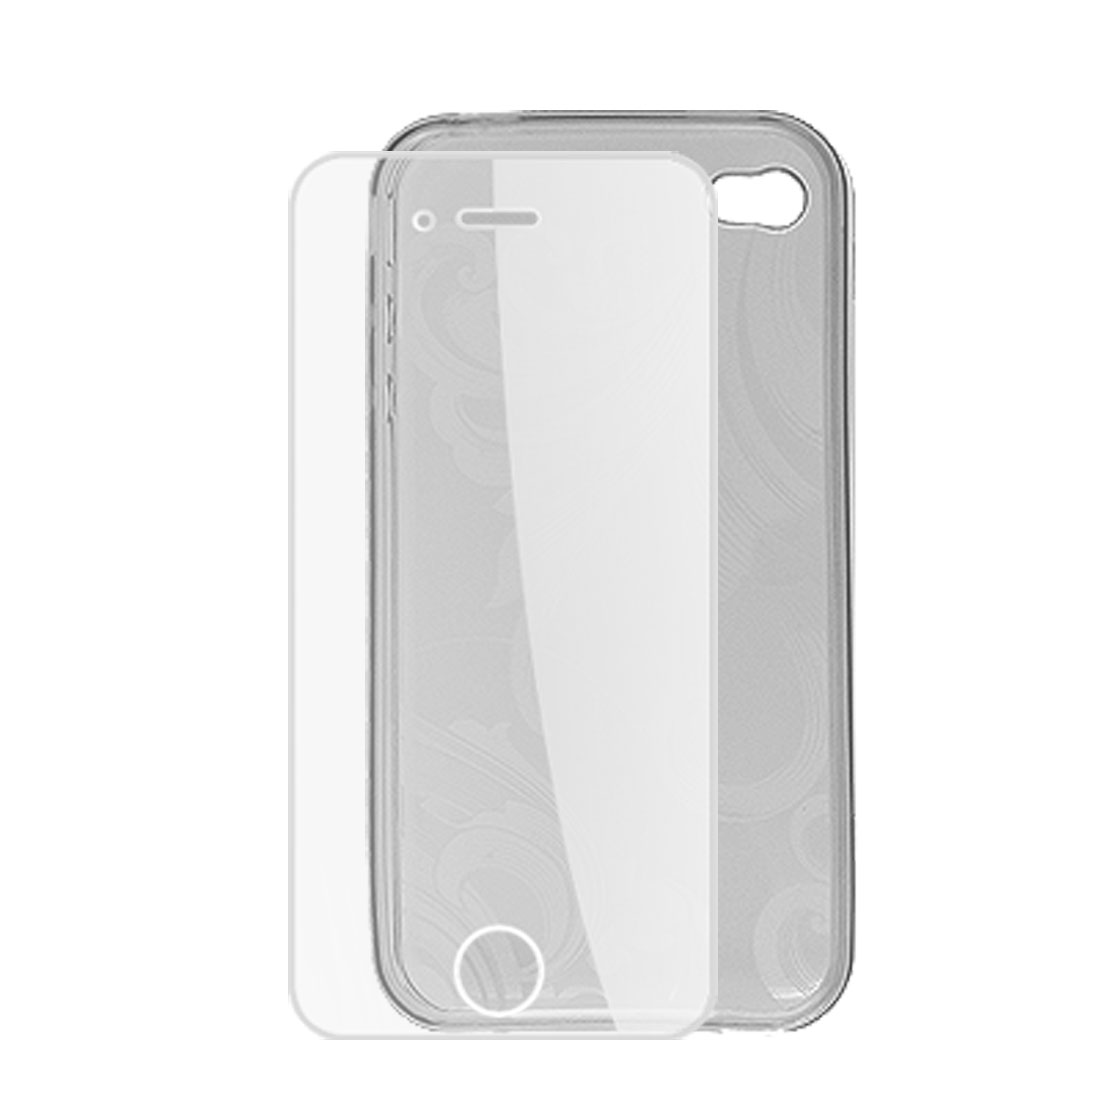 Flower Pattern Soft Plastic Clear Gray Skin with Screen Guard for iPhone 4